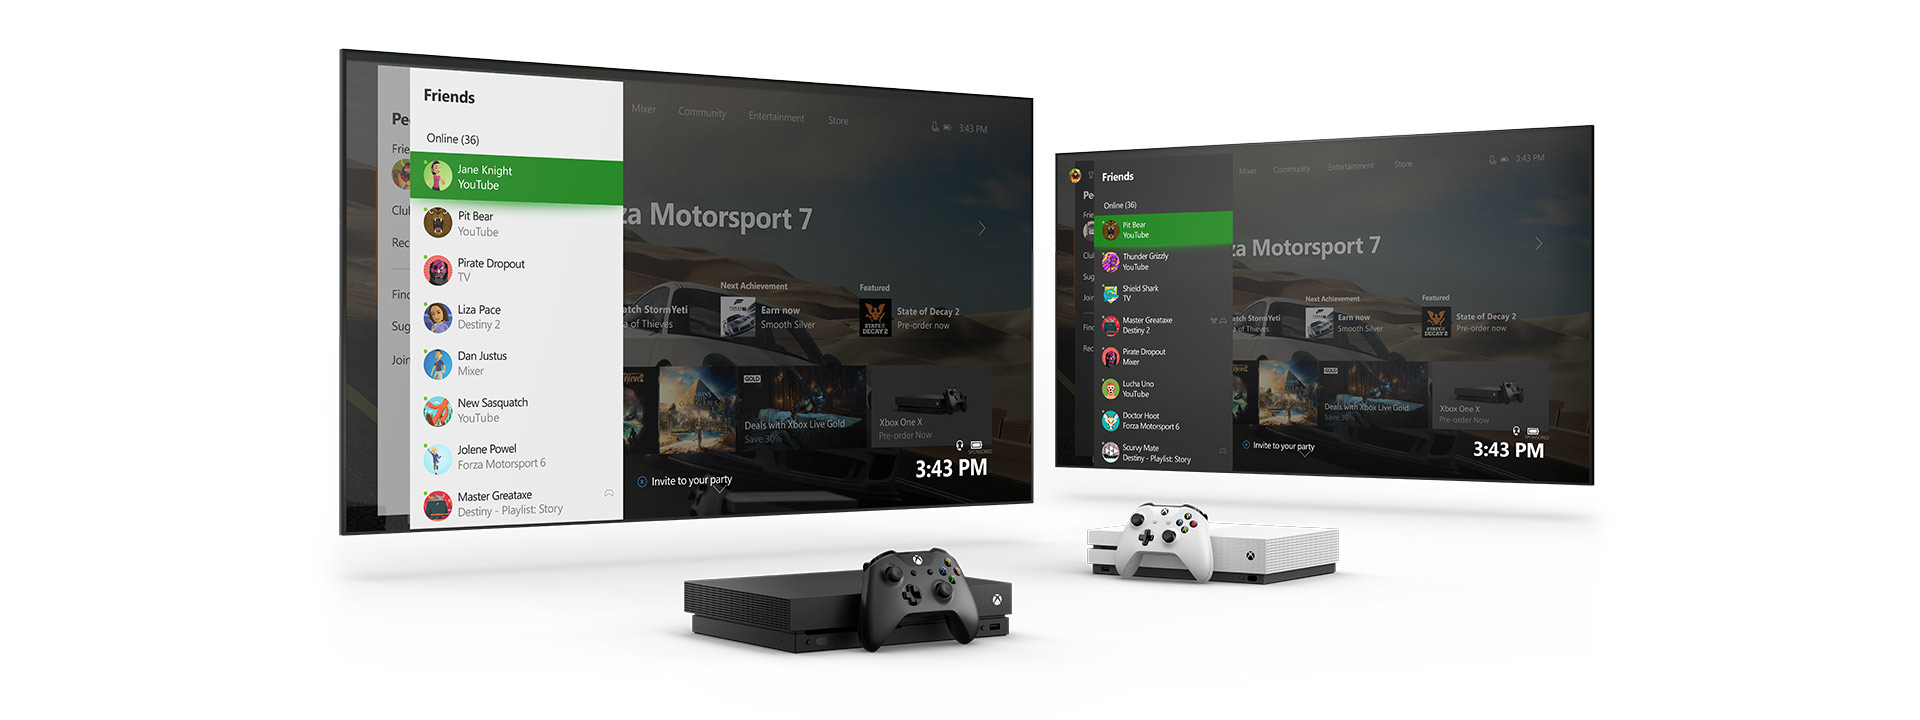 Experience the New Xbox One Dashboard | Xbox